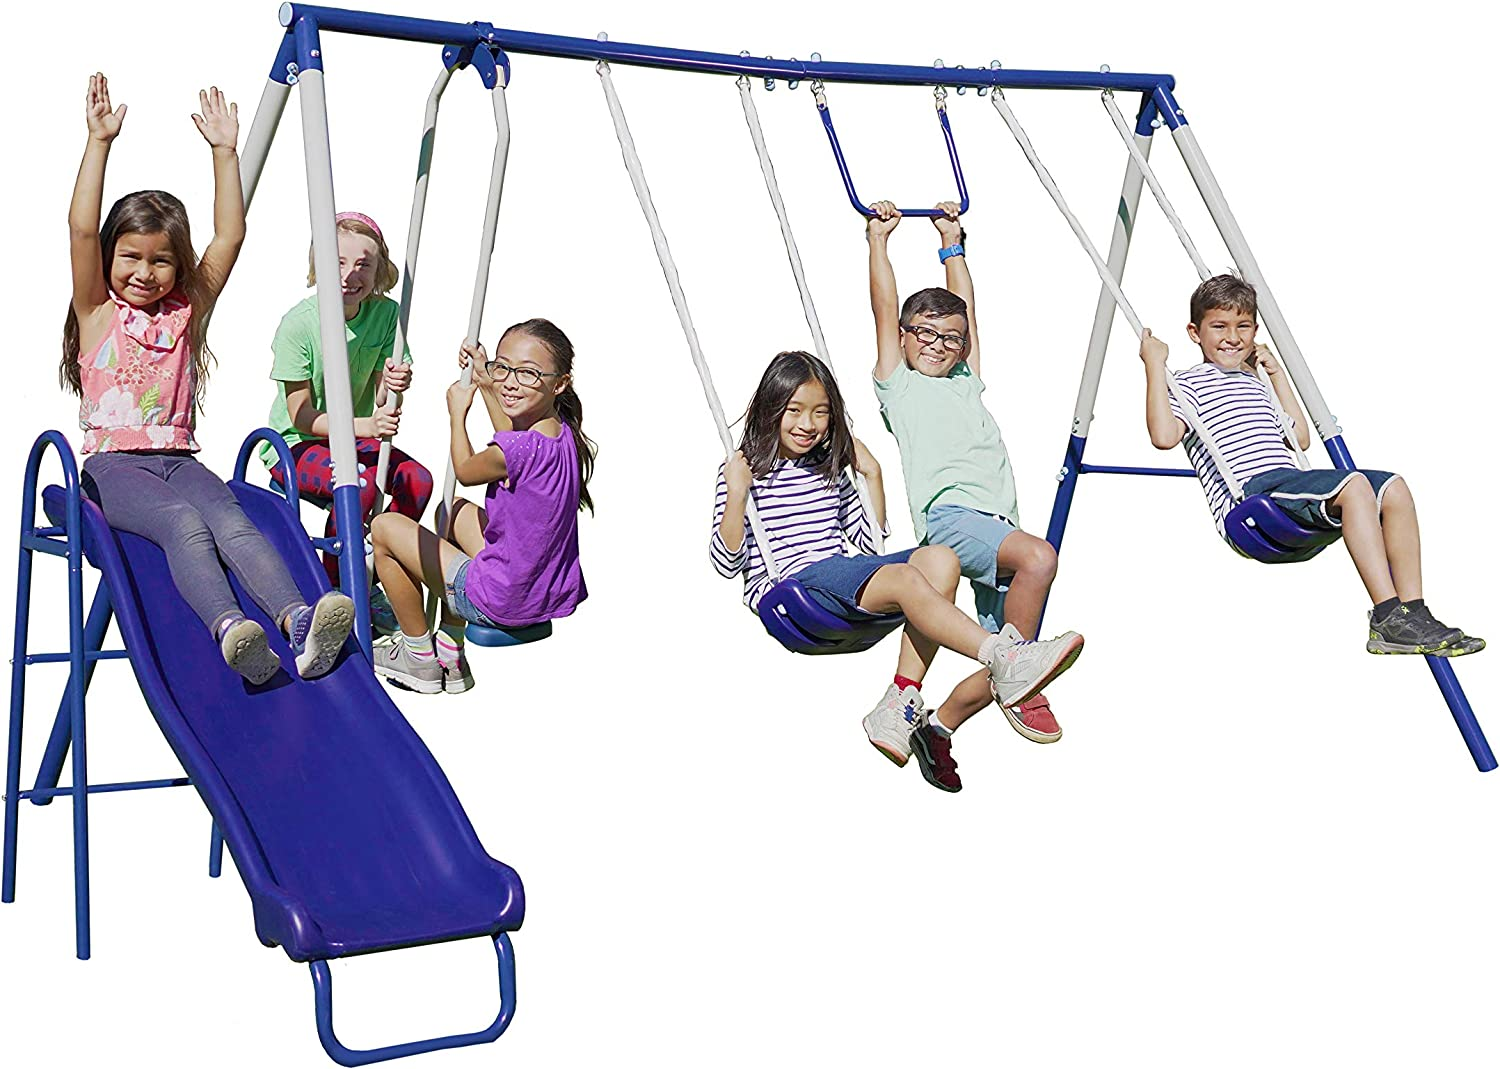 Sportspower Arcadia Swing Set - Outdoor Heavy-Duty Metal Playset for Kids